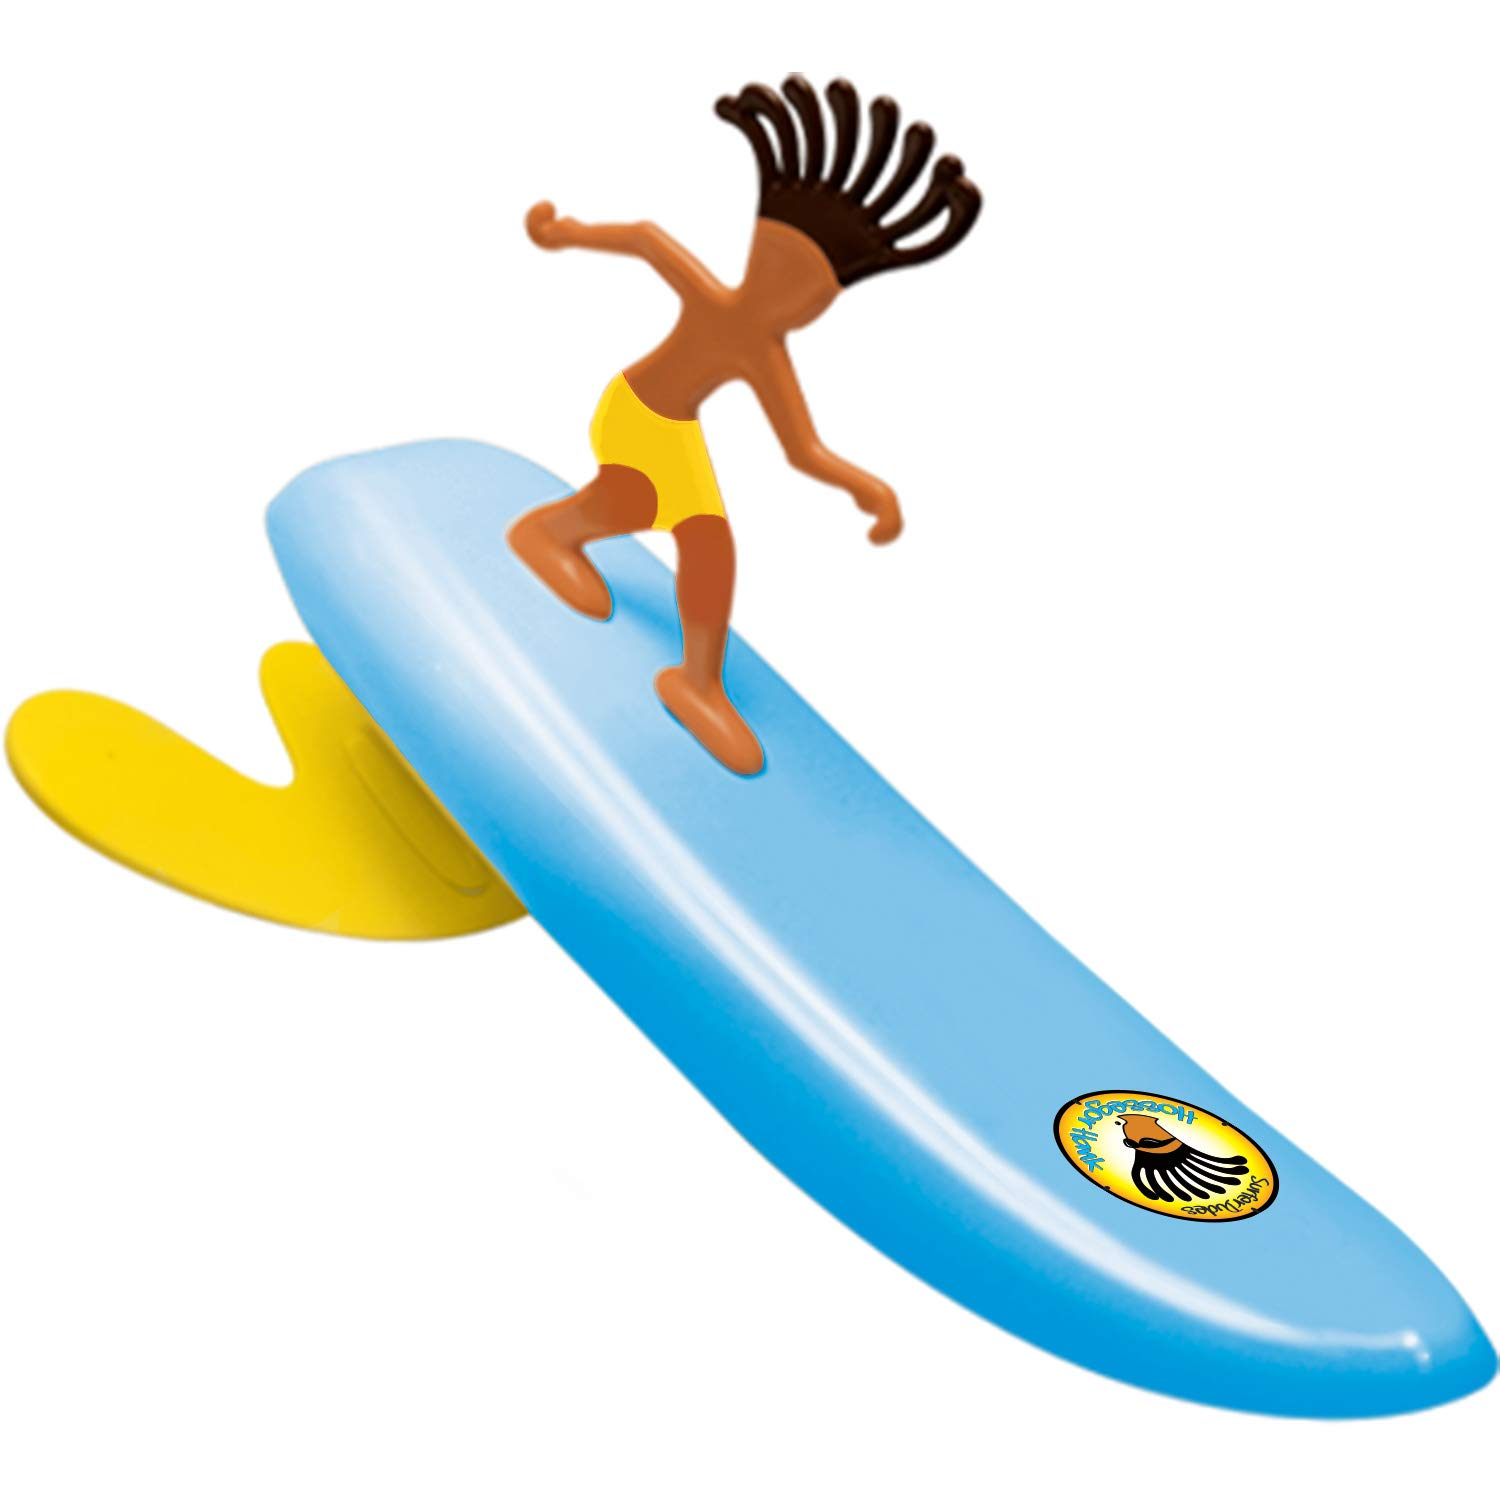 Surfer Dudes Wave Powered Mini-Surfer and Surfboard Toy Blue Hossegor Hank 2019//2020 Edition